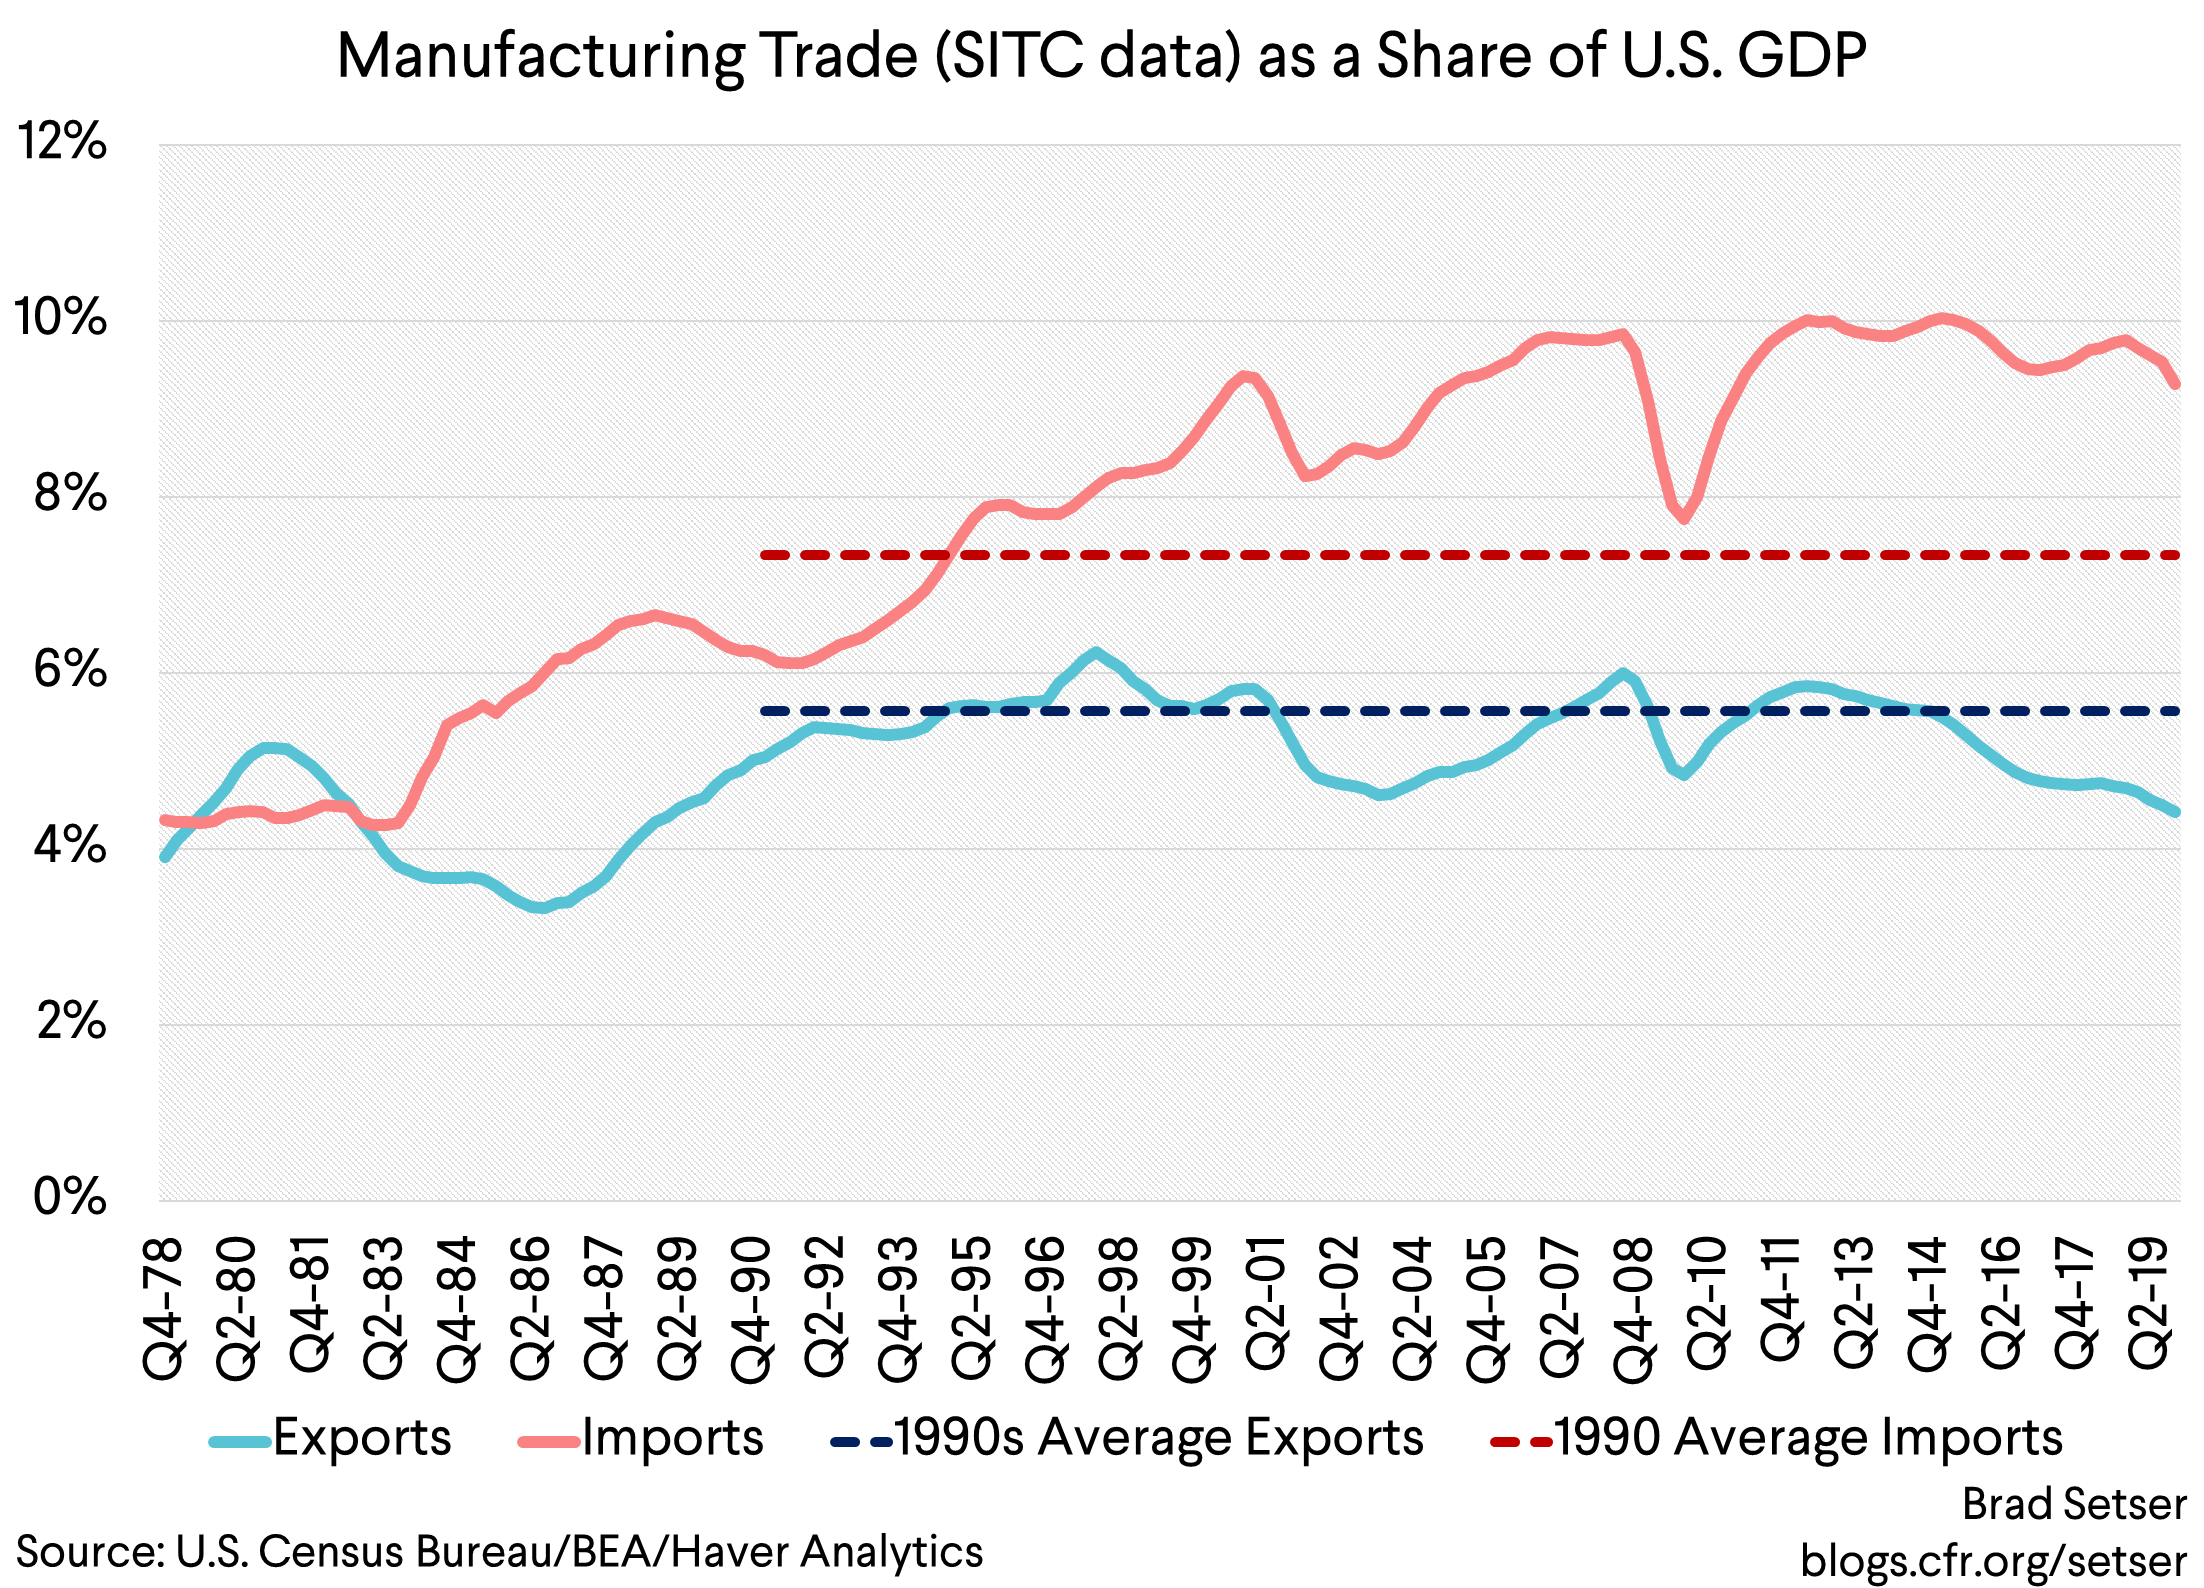 Five Points about U.S. Trade Over the Last Thirty Years